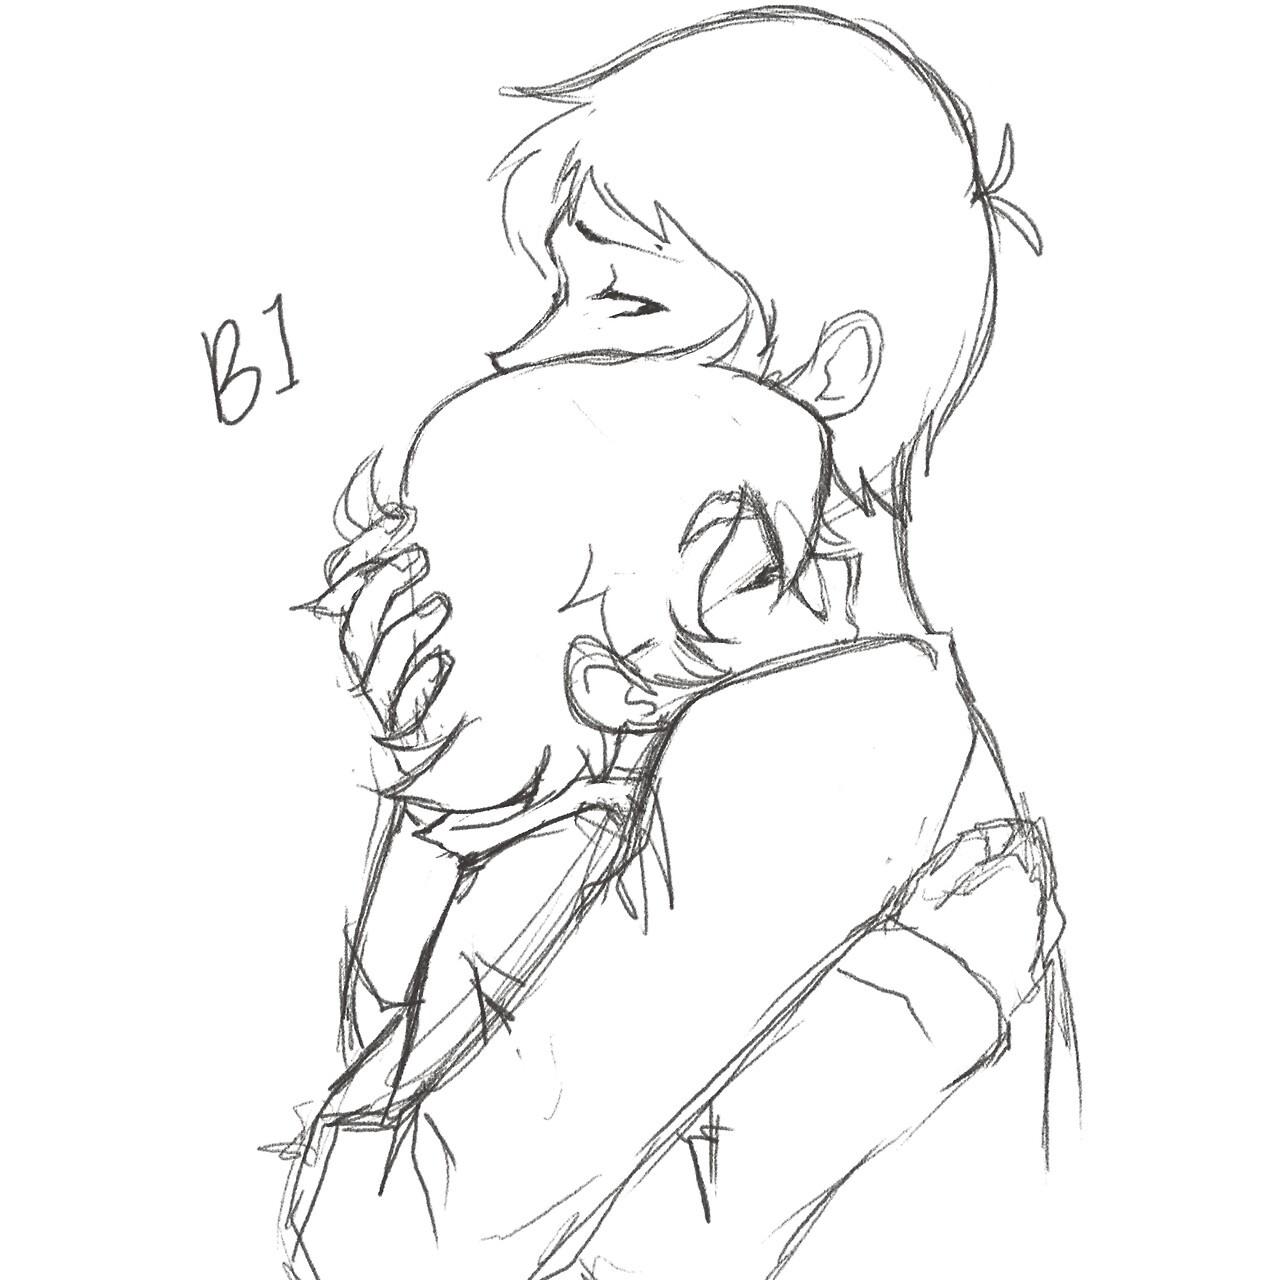 1280x1280 Lance And Pidge Hugging Each Other Sketch Drawing From Voltron